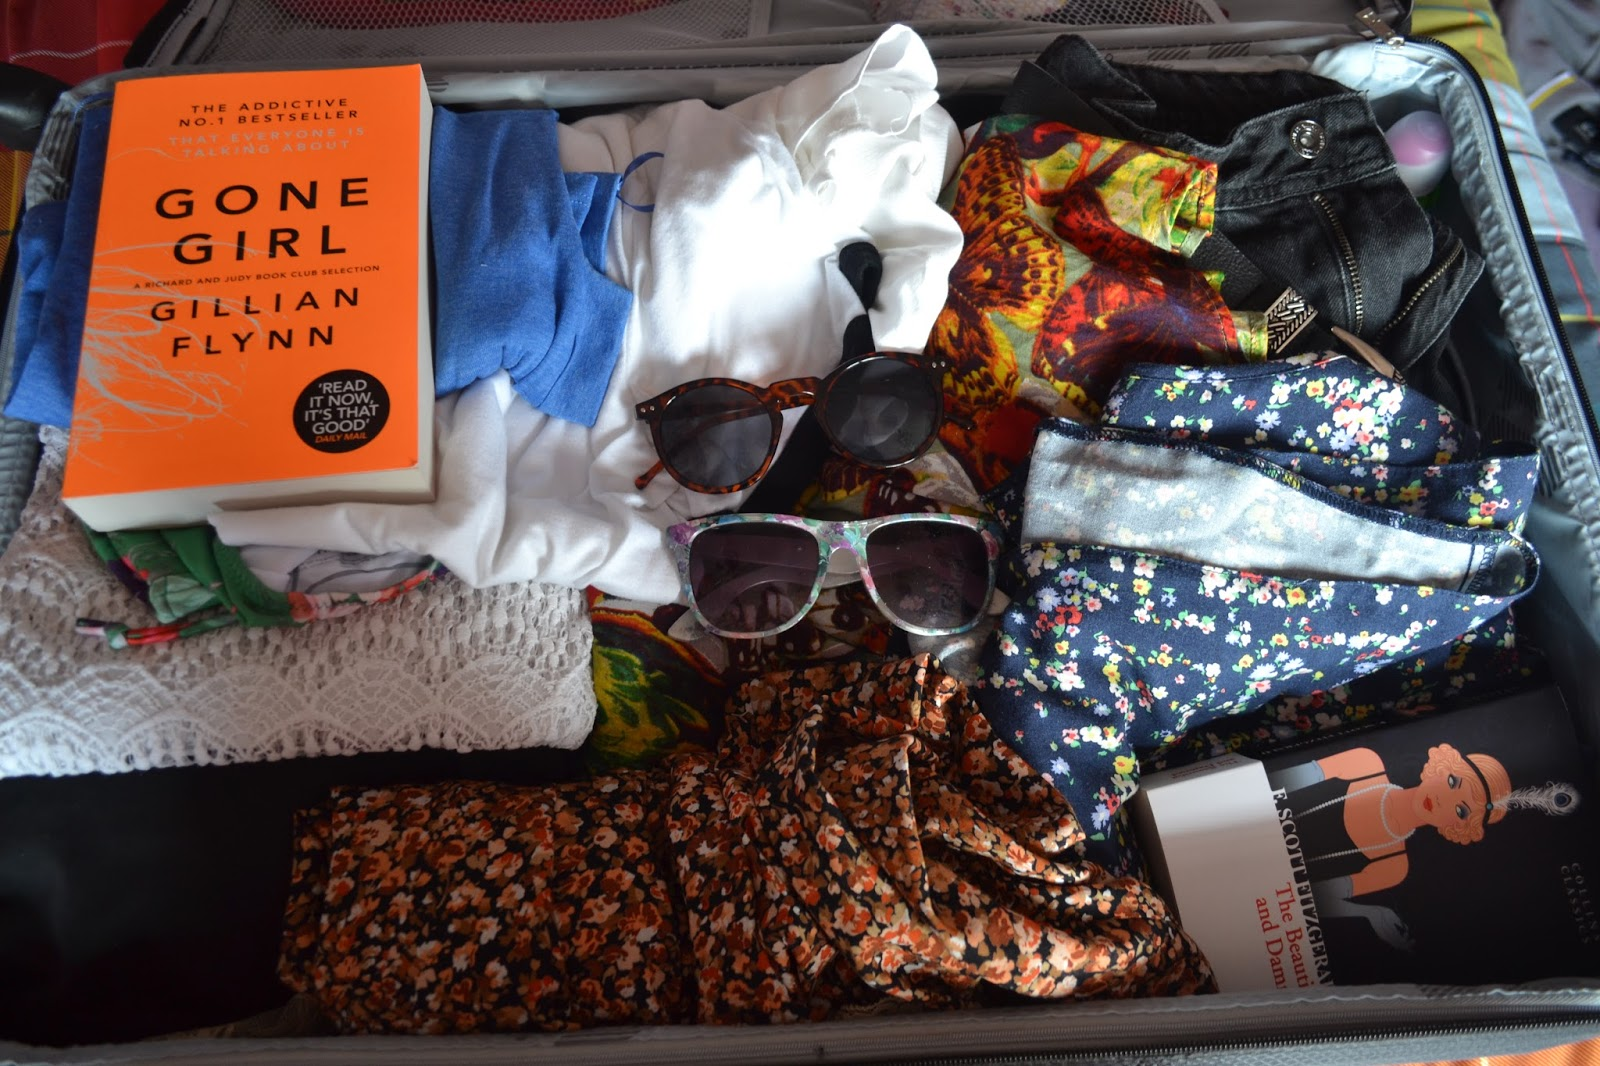 Inside my suitcase: sunglasses, gone girl, the beautiful and damned